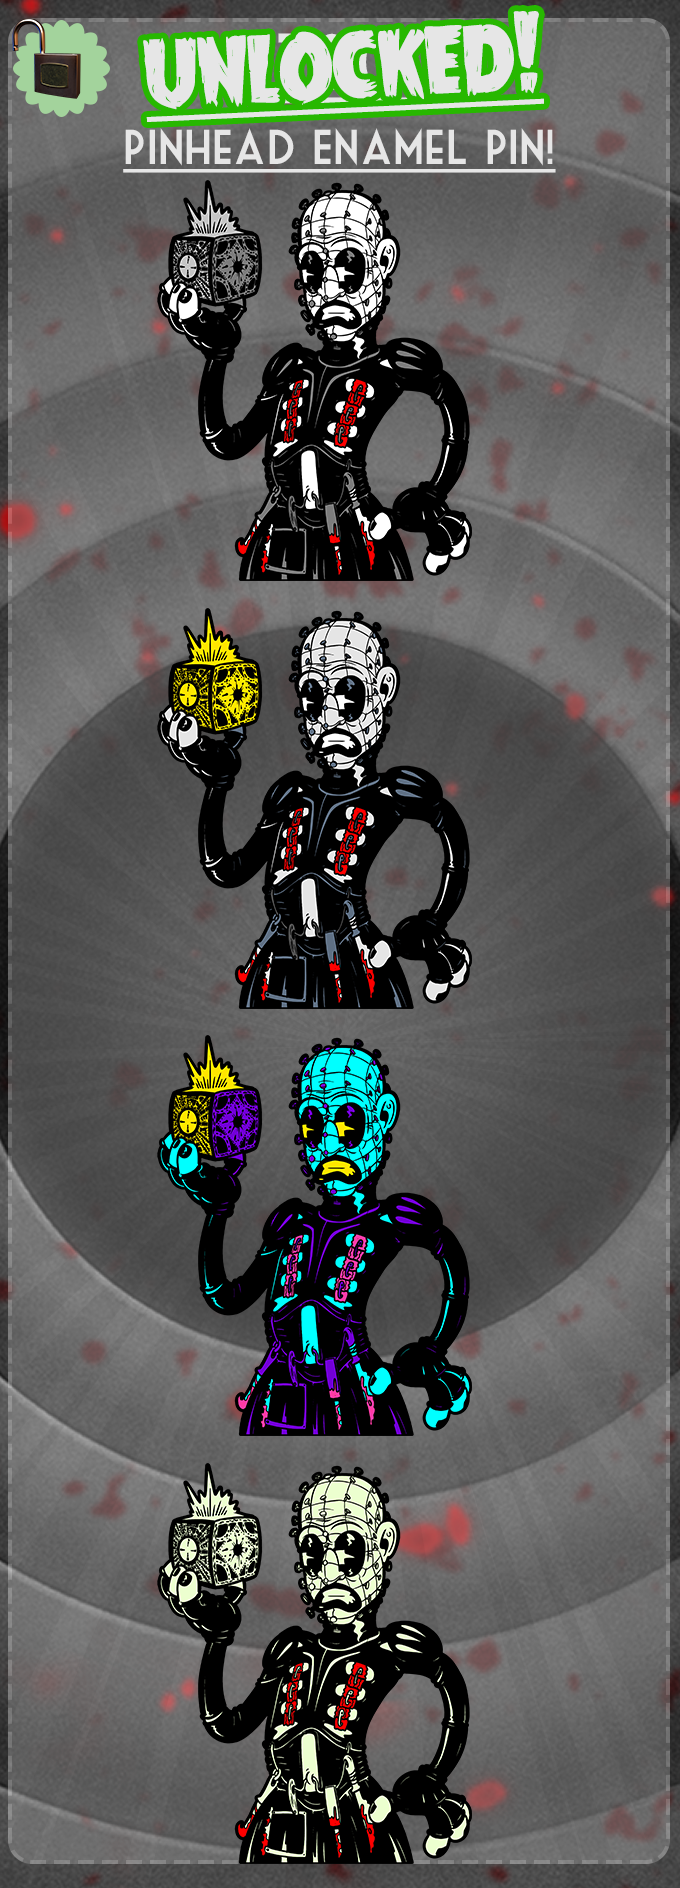 The box has been opened! Pinhead is unlocked in all varaints!